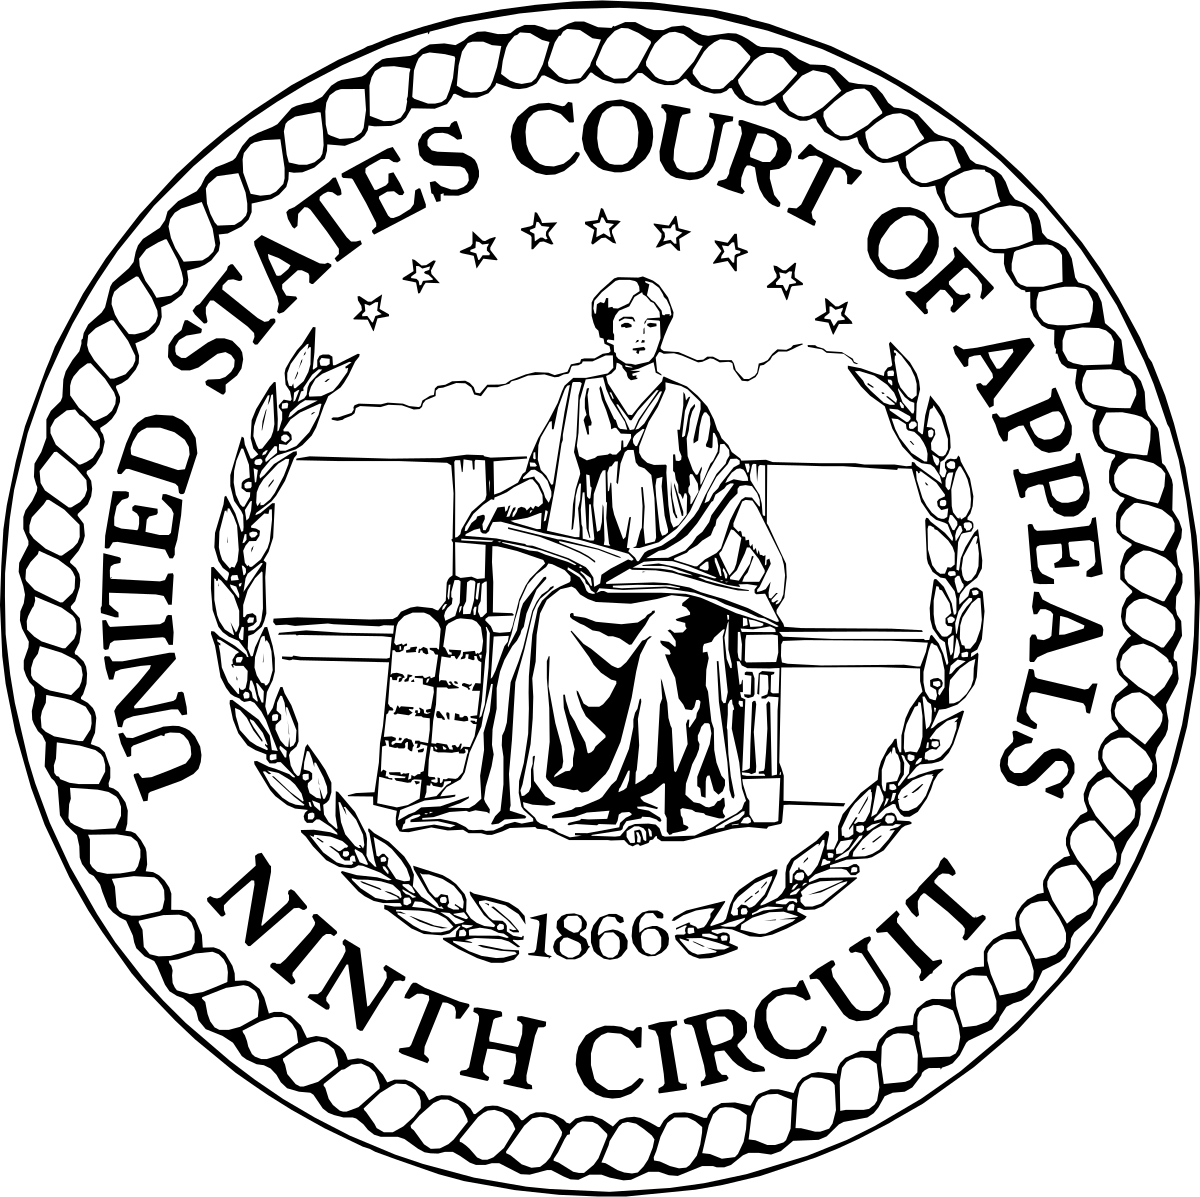 9th Circuit Federal Court